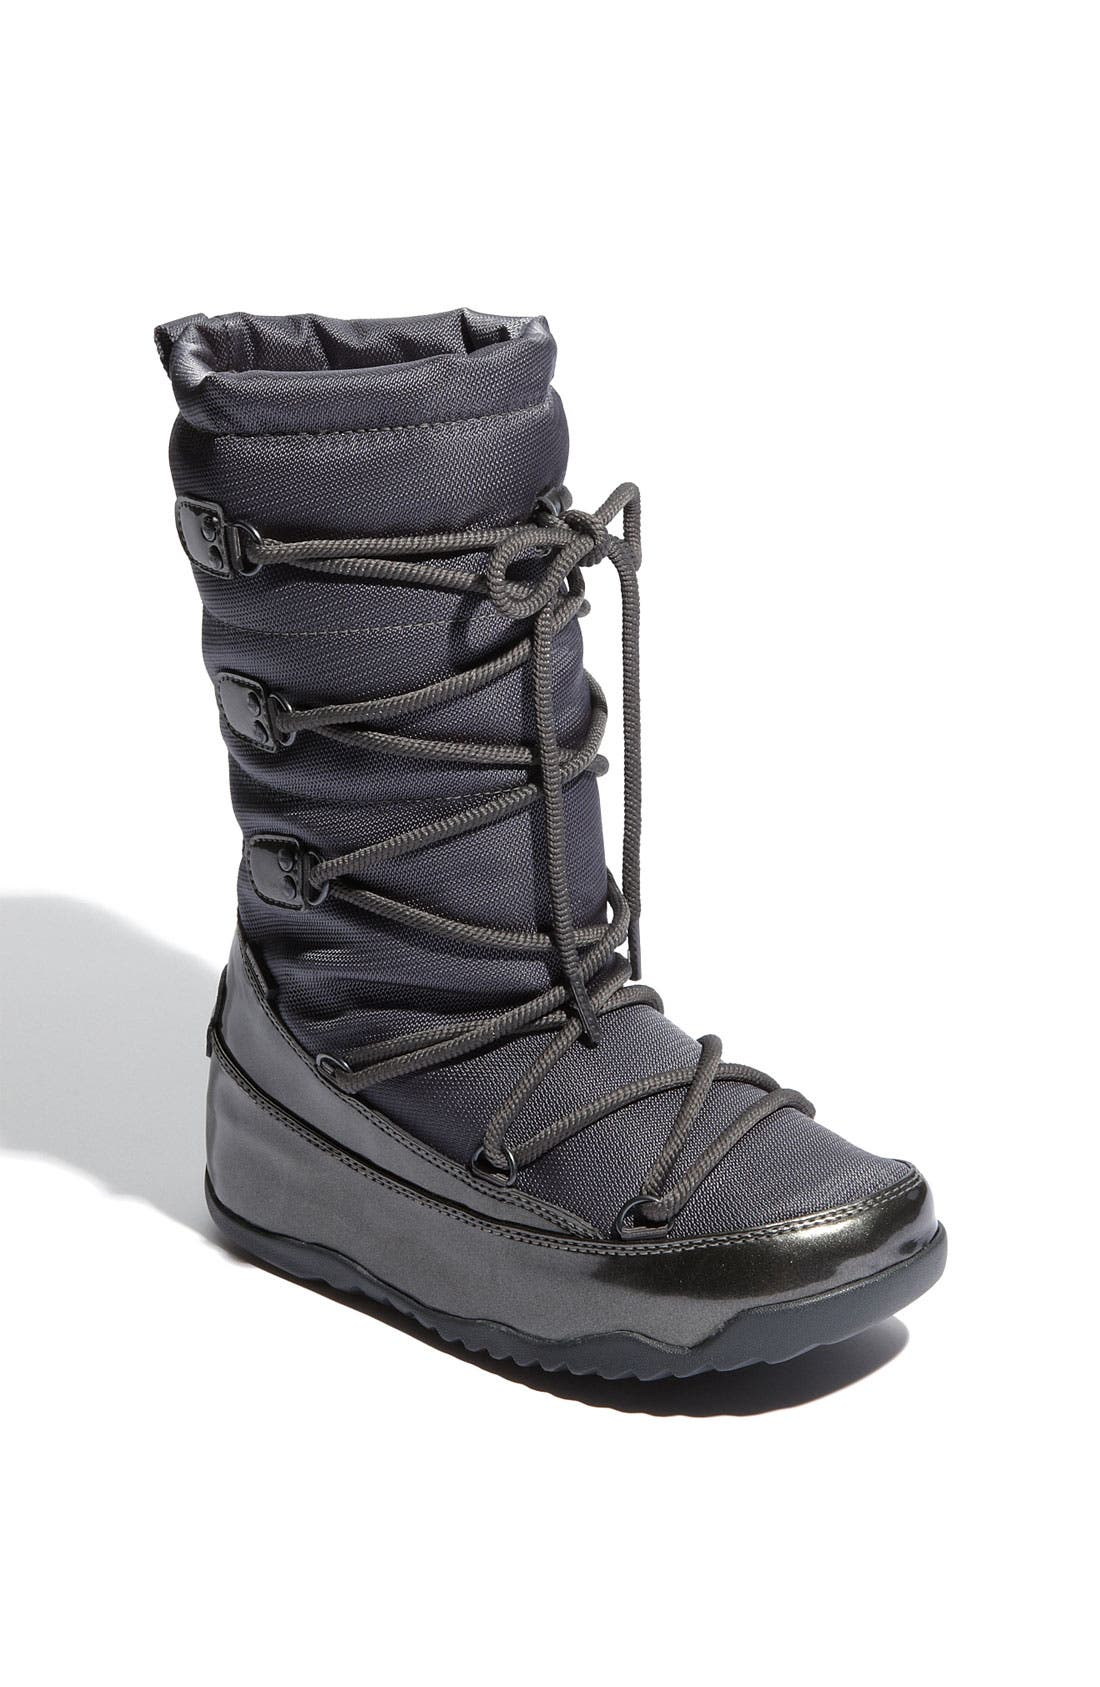 Alternate Image 1 Selected - FitFlop 'Blizz' Boot